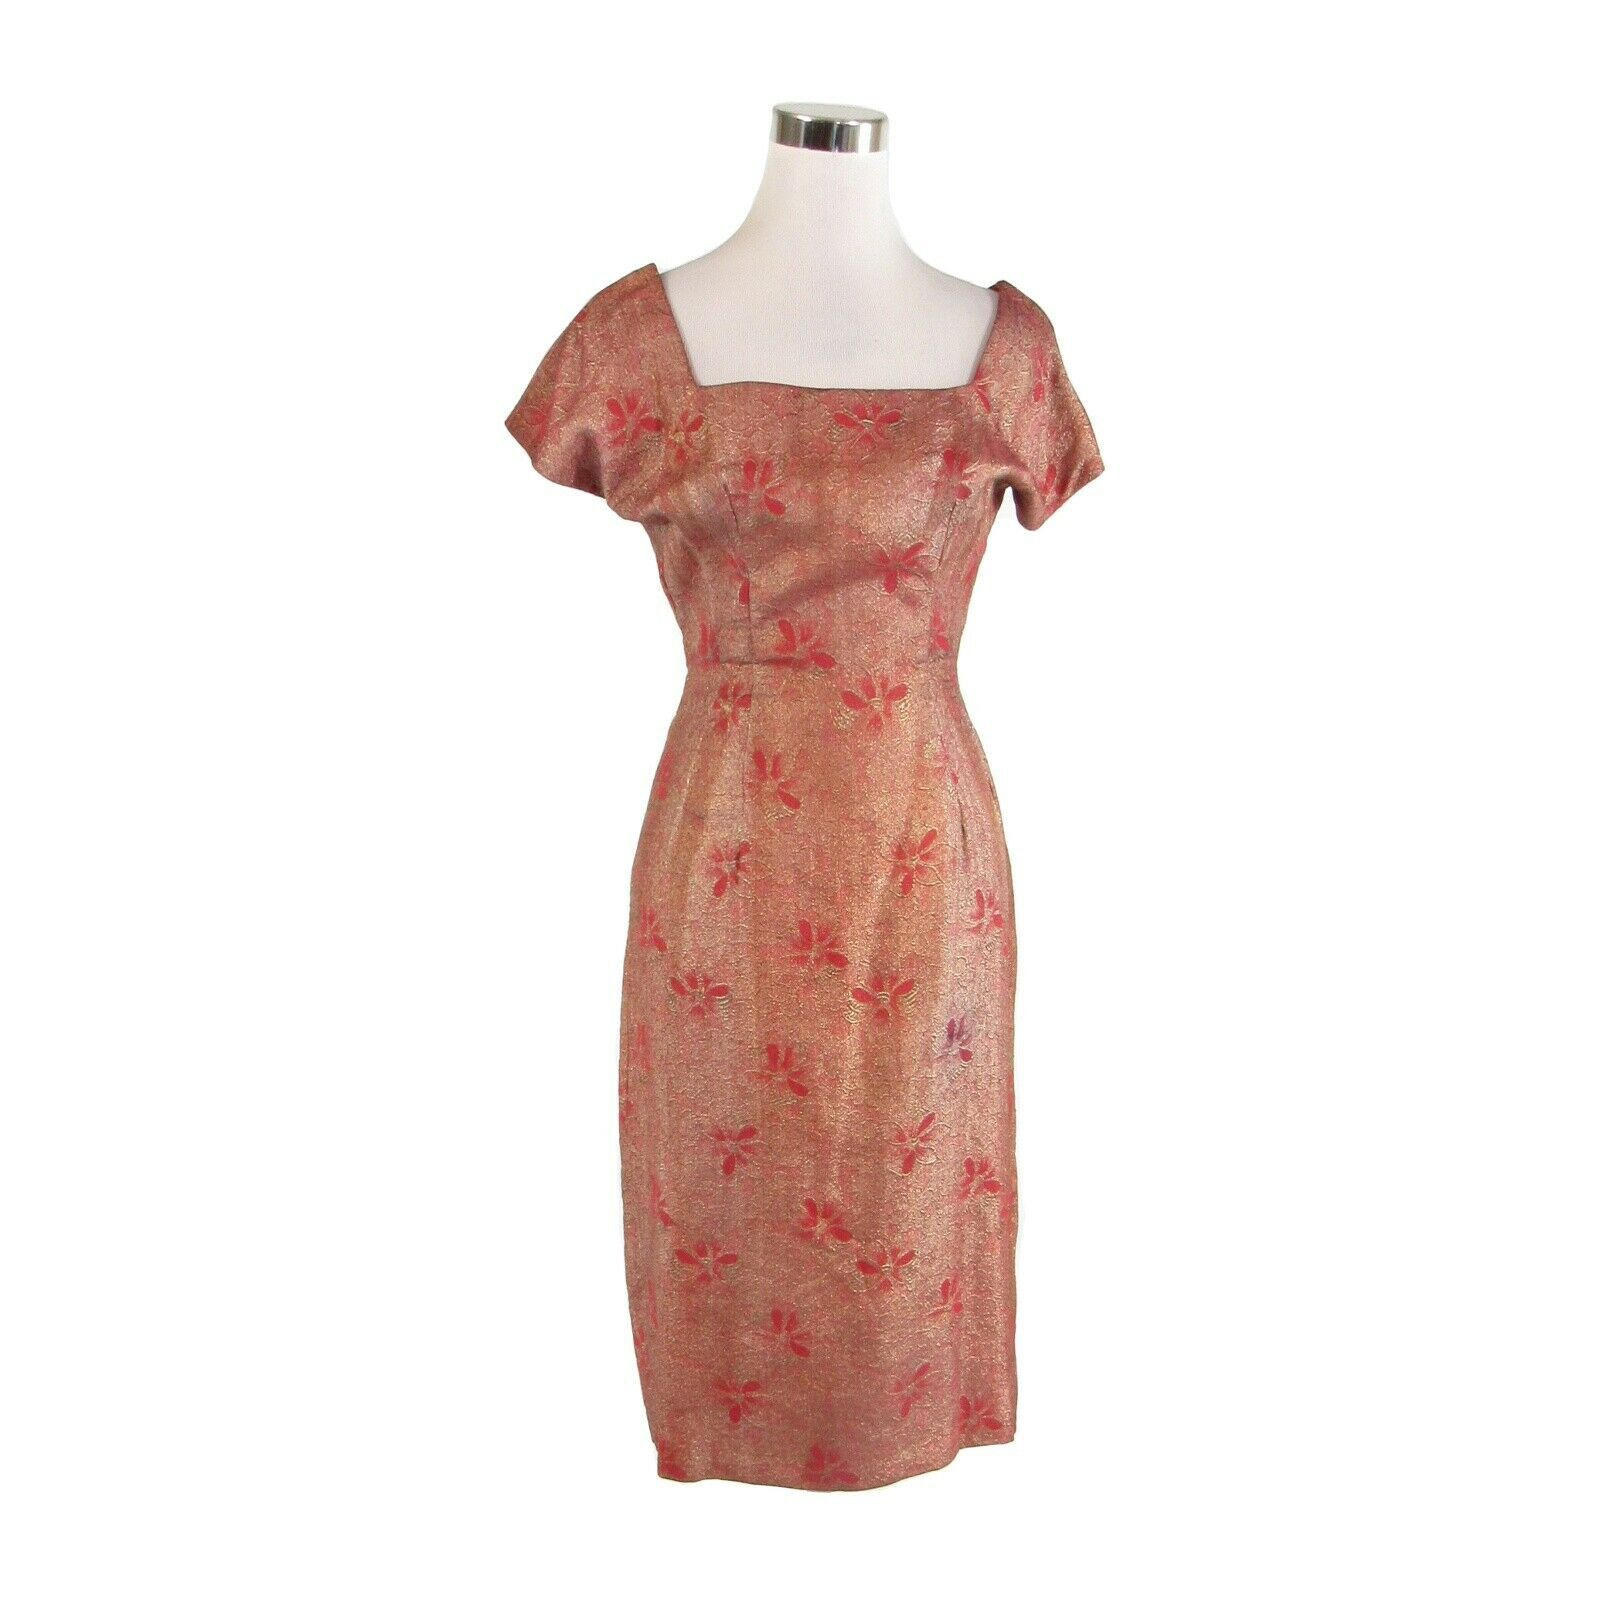 Primary image for Maroon red gold floral brocade vintage cap sleeve A-line dress XS